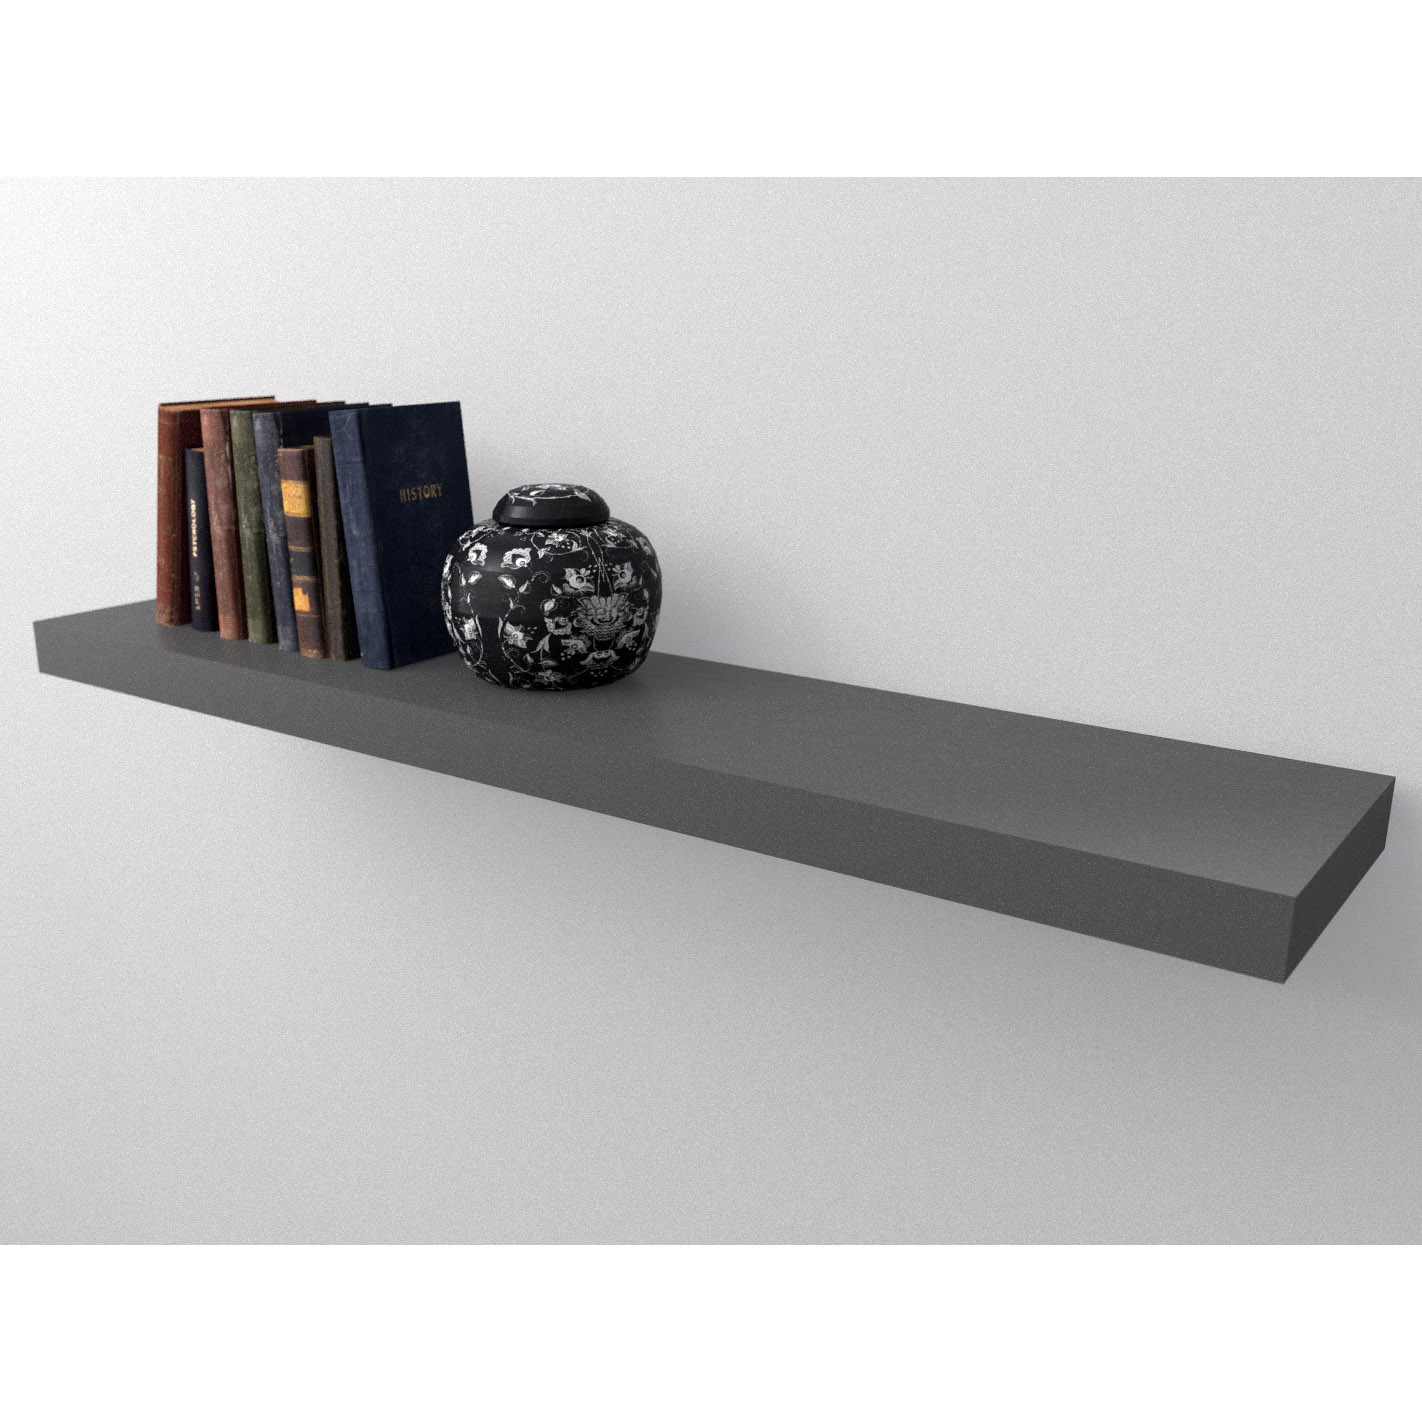 gray wall shelf pmpresssecretariat stone grey dark floating shelves kit mastershelf retro kitchen custom wood bookshelves laying peel and stick tile concrete floor unit with coat